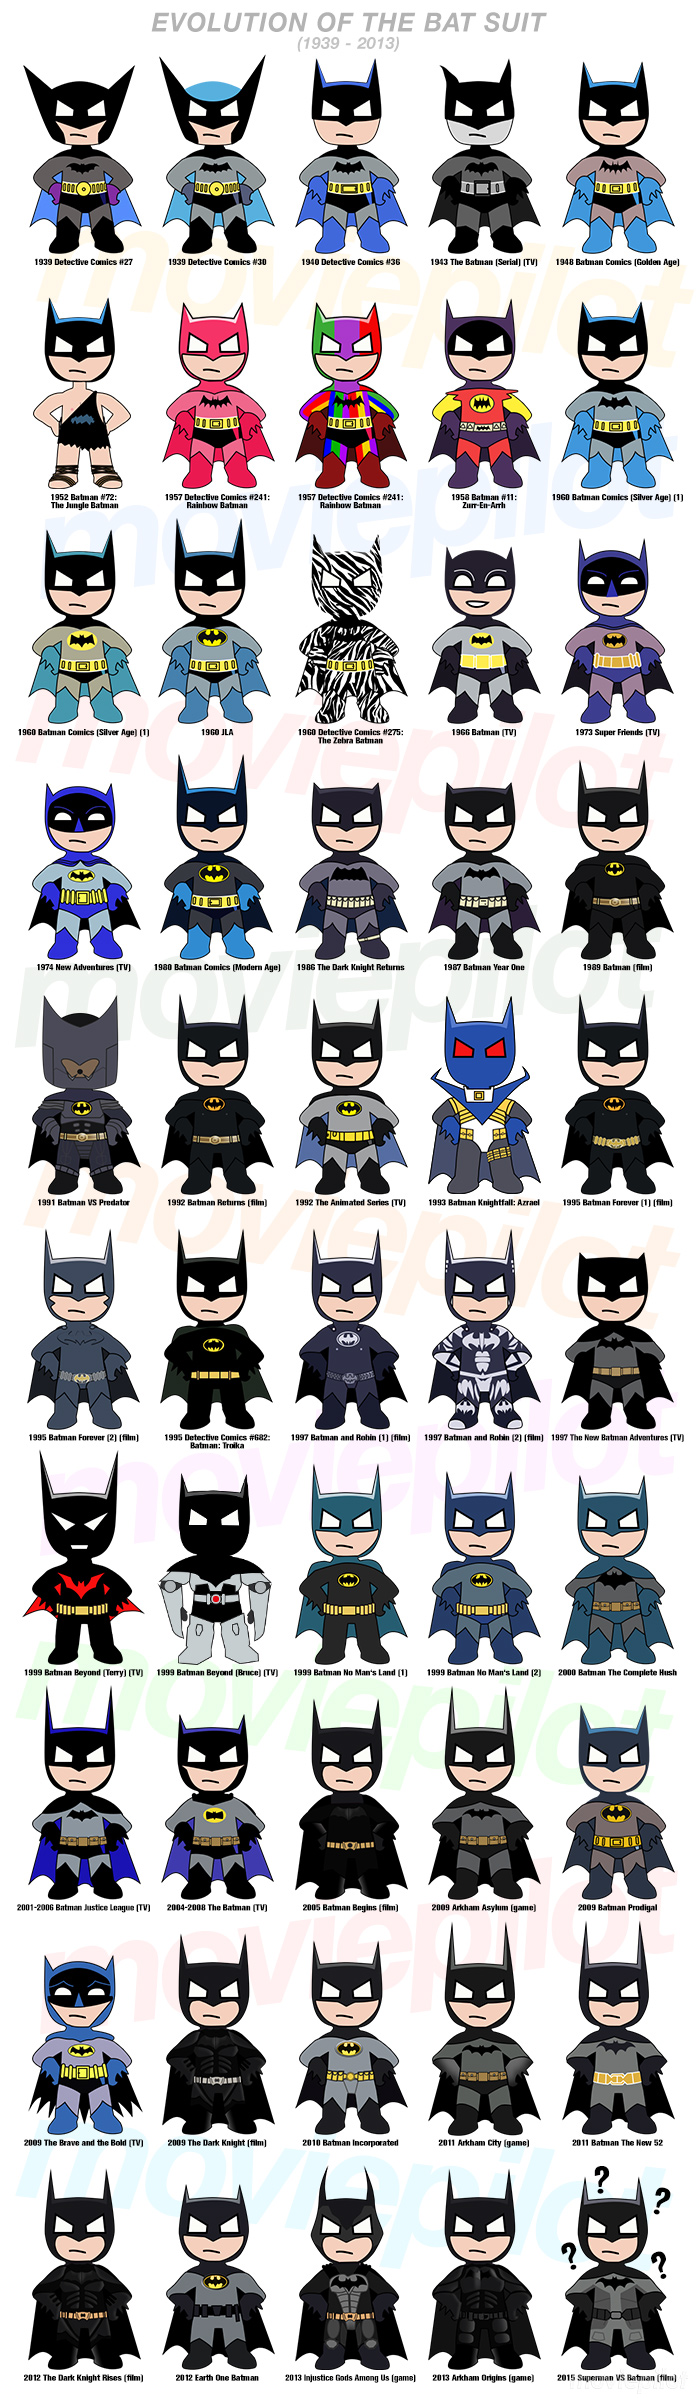 INFOGRAPHIC The Evolution of the Batsuit | Moviepilot New Stories for Upcoming Movies. For Jennifer and Stephanie! Lol  sc 1 st  Pinterest & INFOGRAPHIC: The Evolution of the Batsuit | Pinterest | Evolution ...